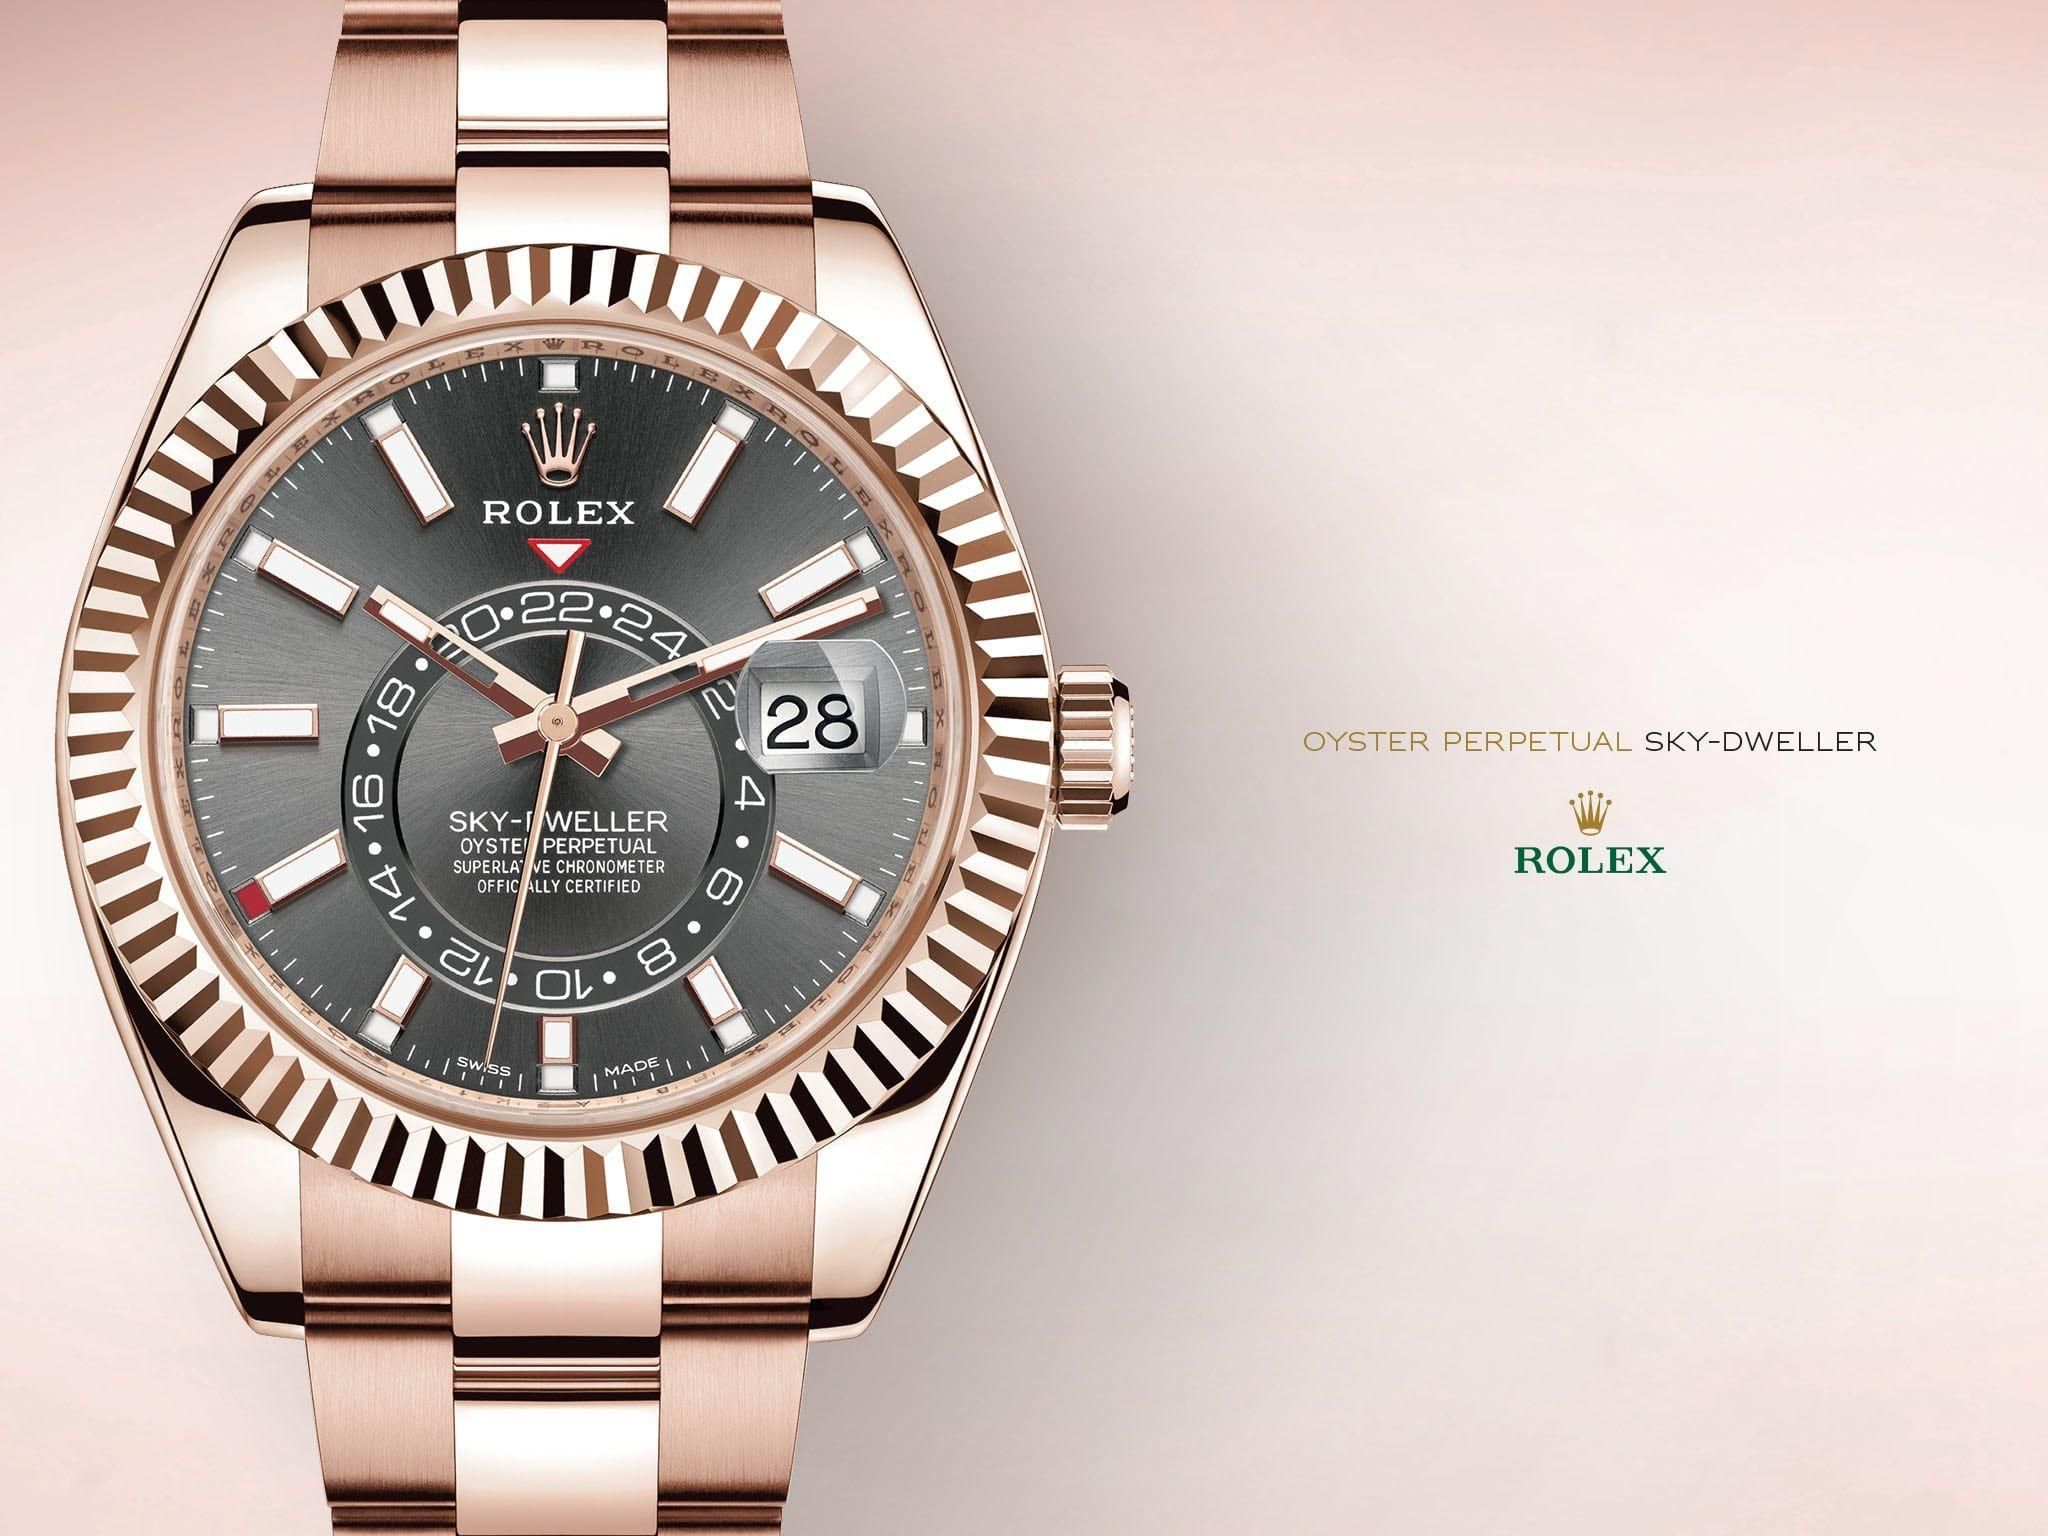 Rolex Watch Wallpapers - Wallpaper Cave